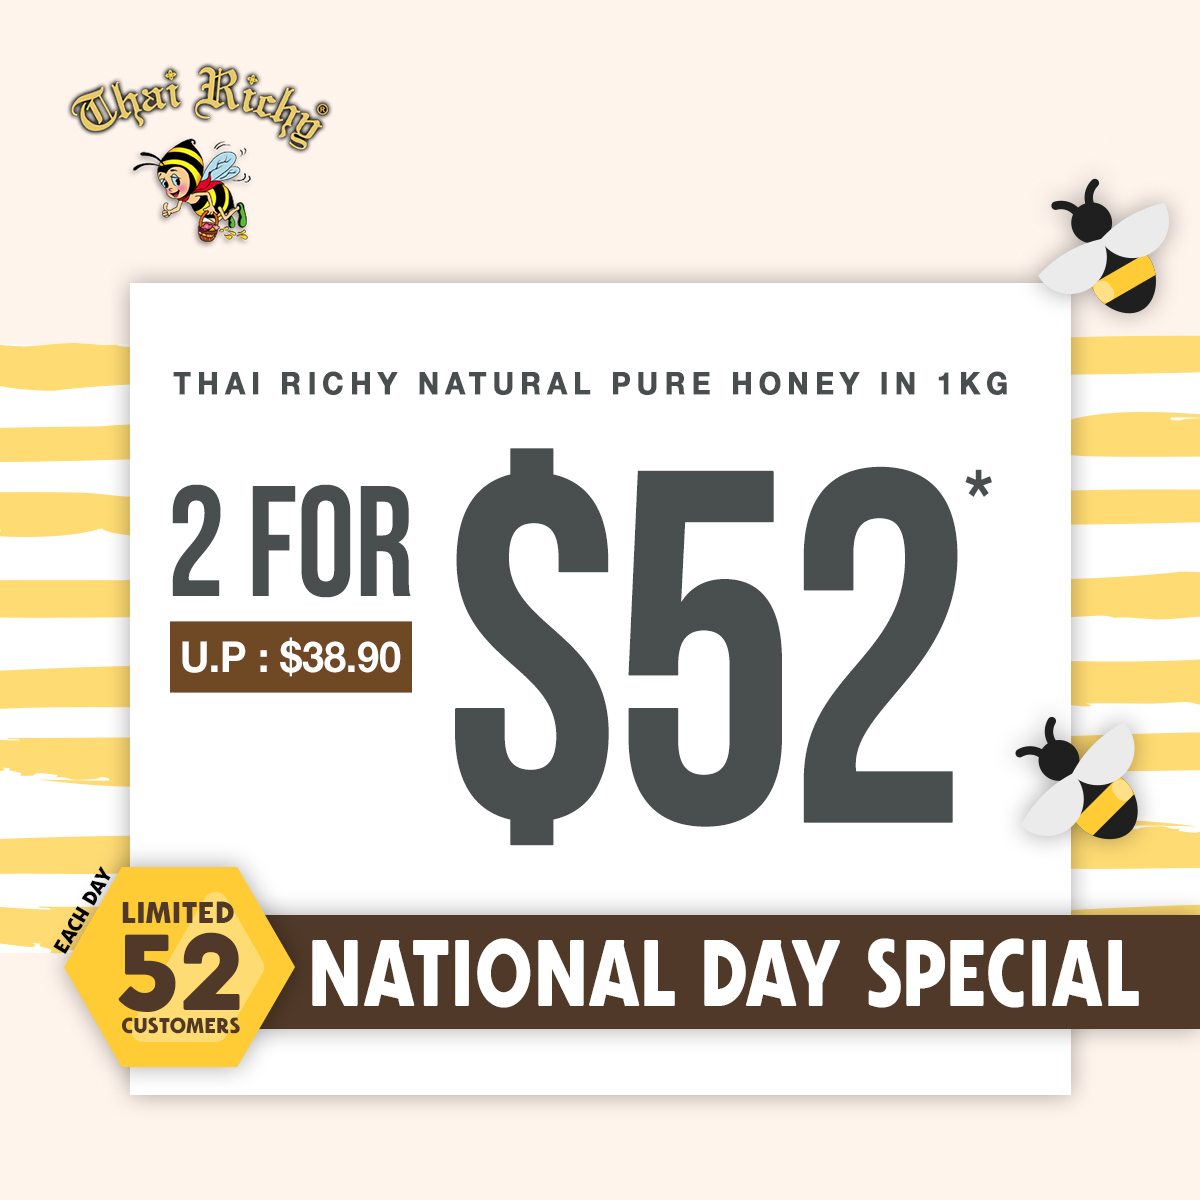 Thai Richy Natural Honey in 1KG Promotion